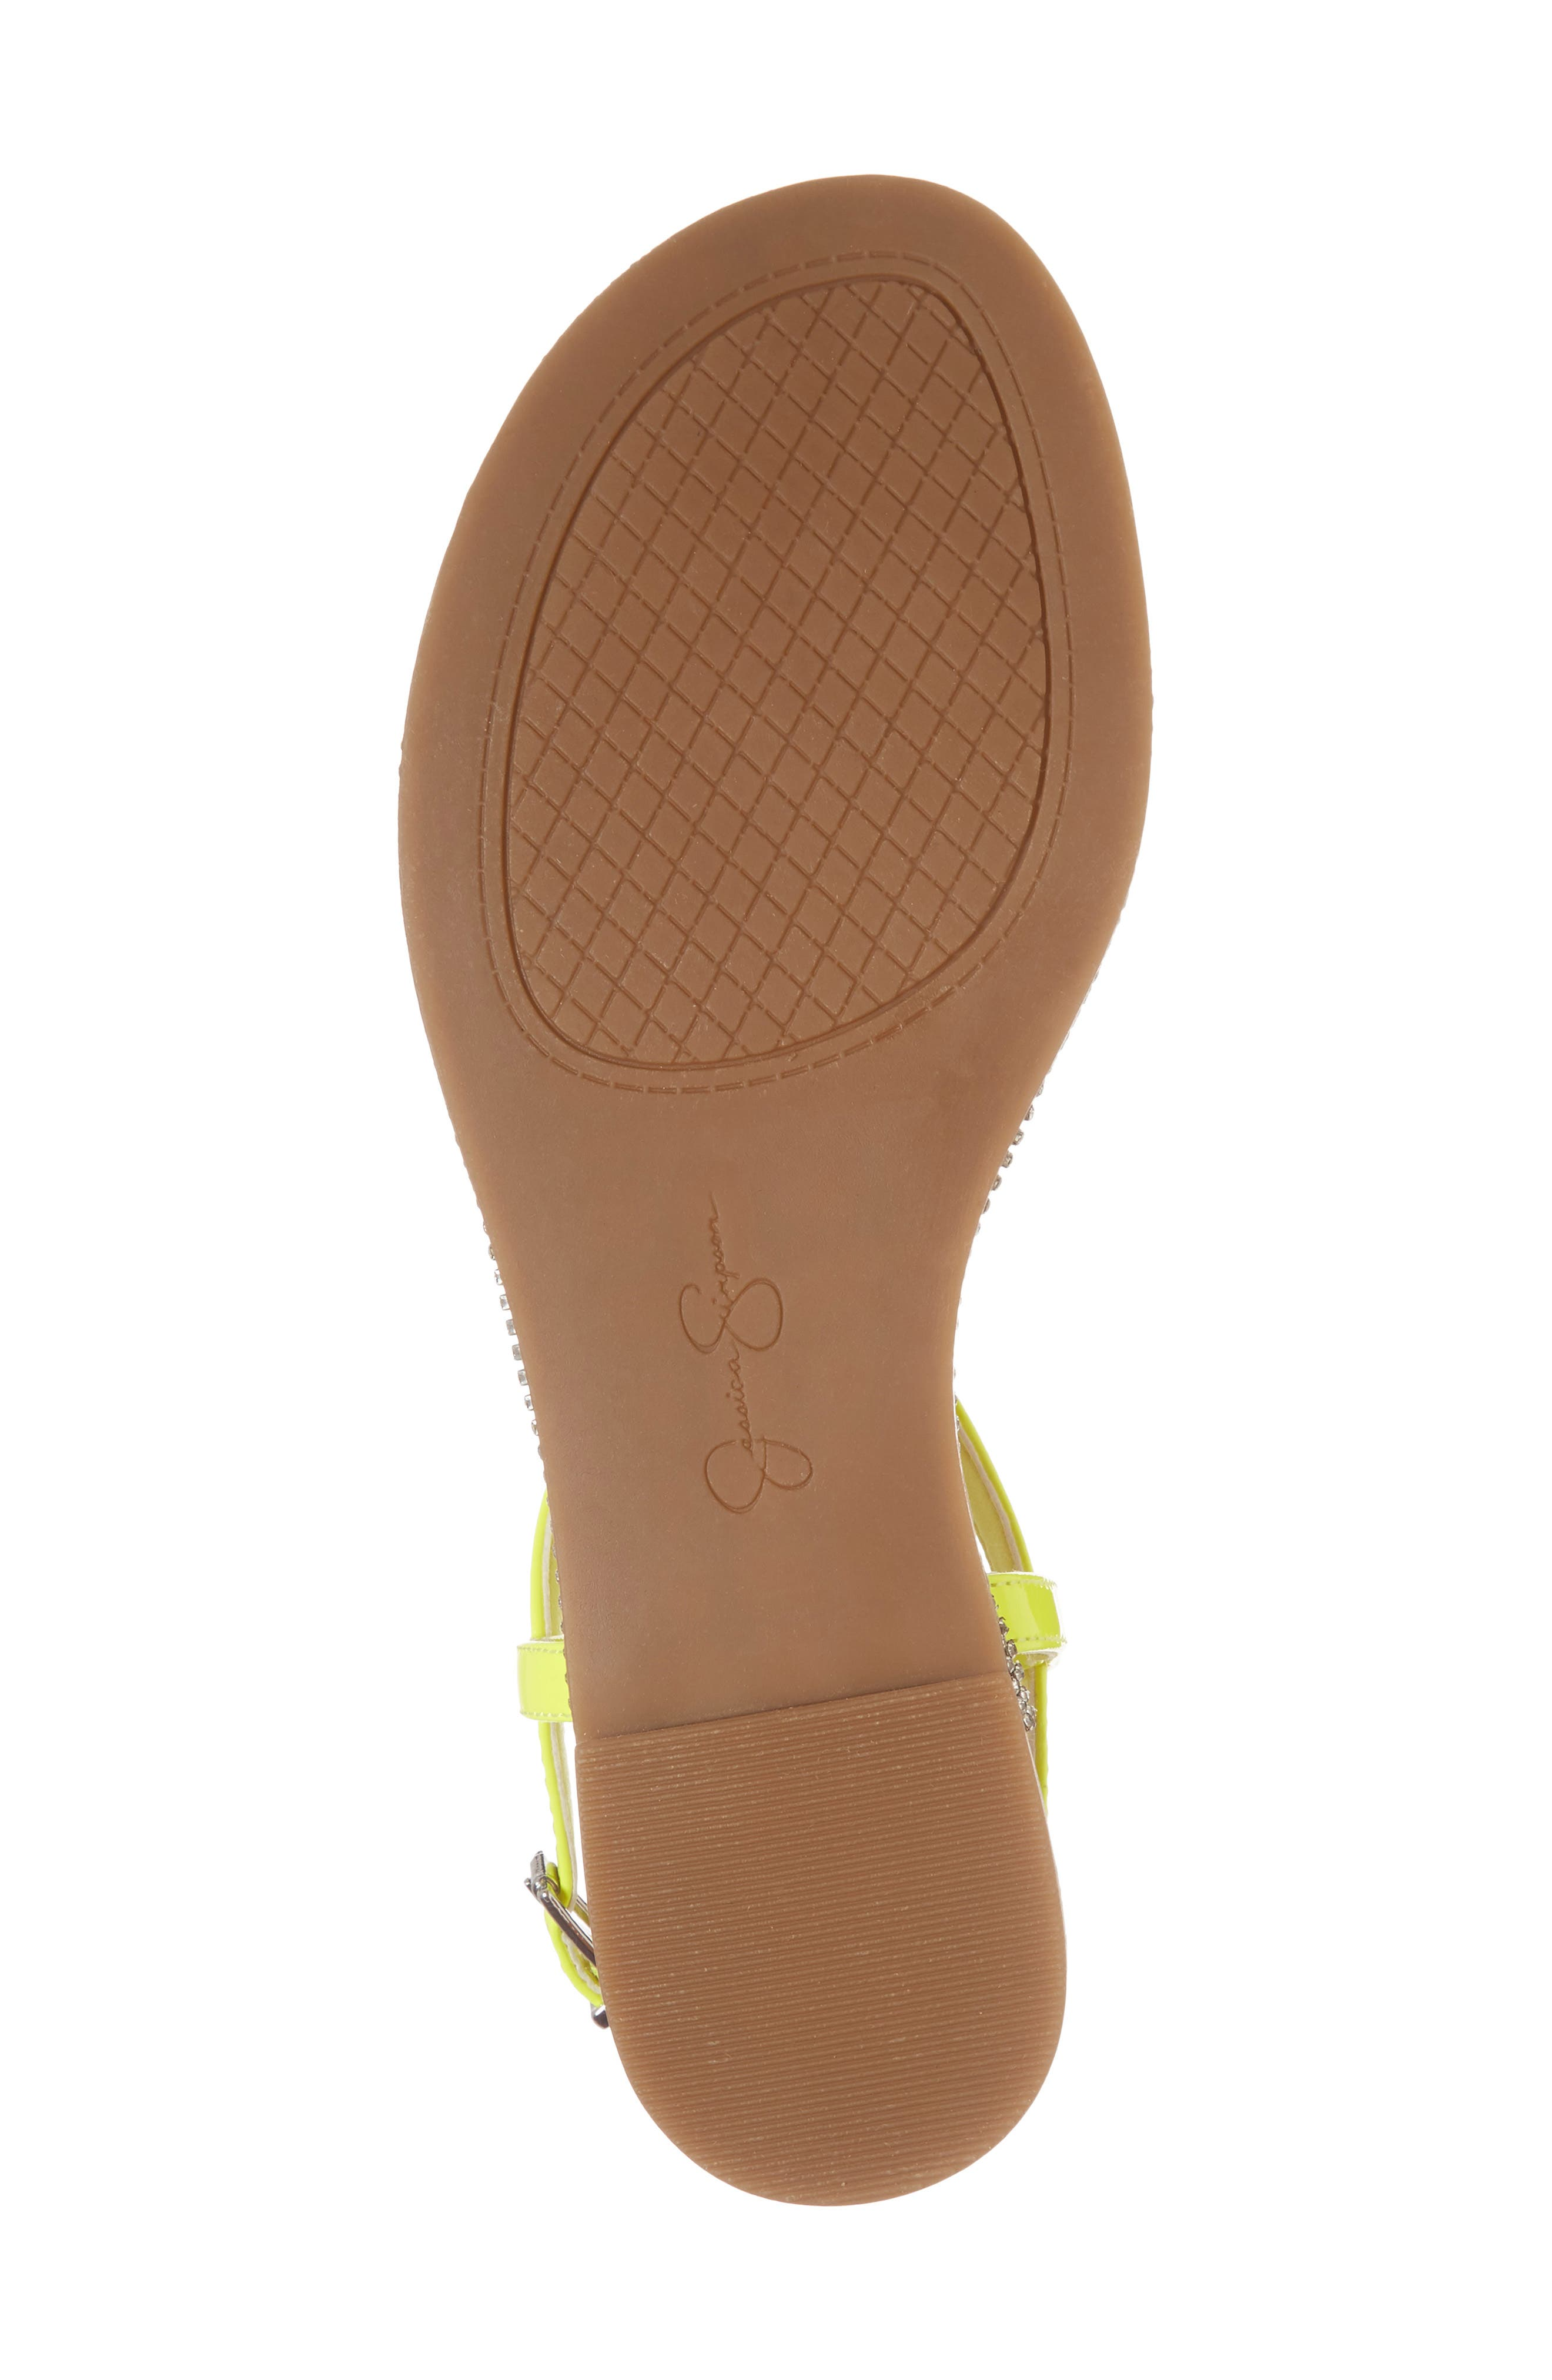 Brimah Sandal,                             Alternate thumbnail 6, color,                             Yellow Shock